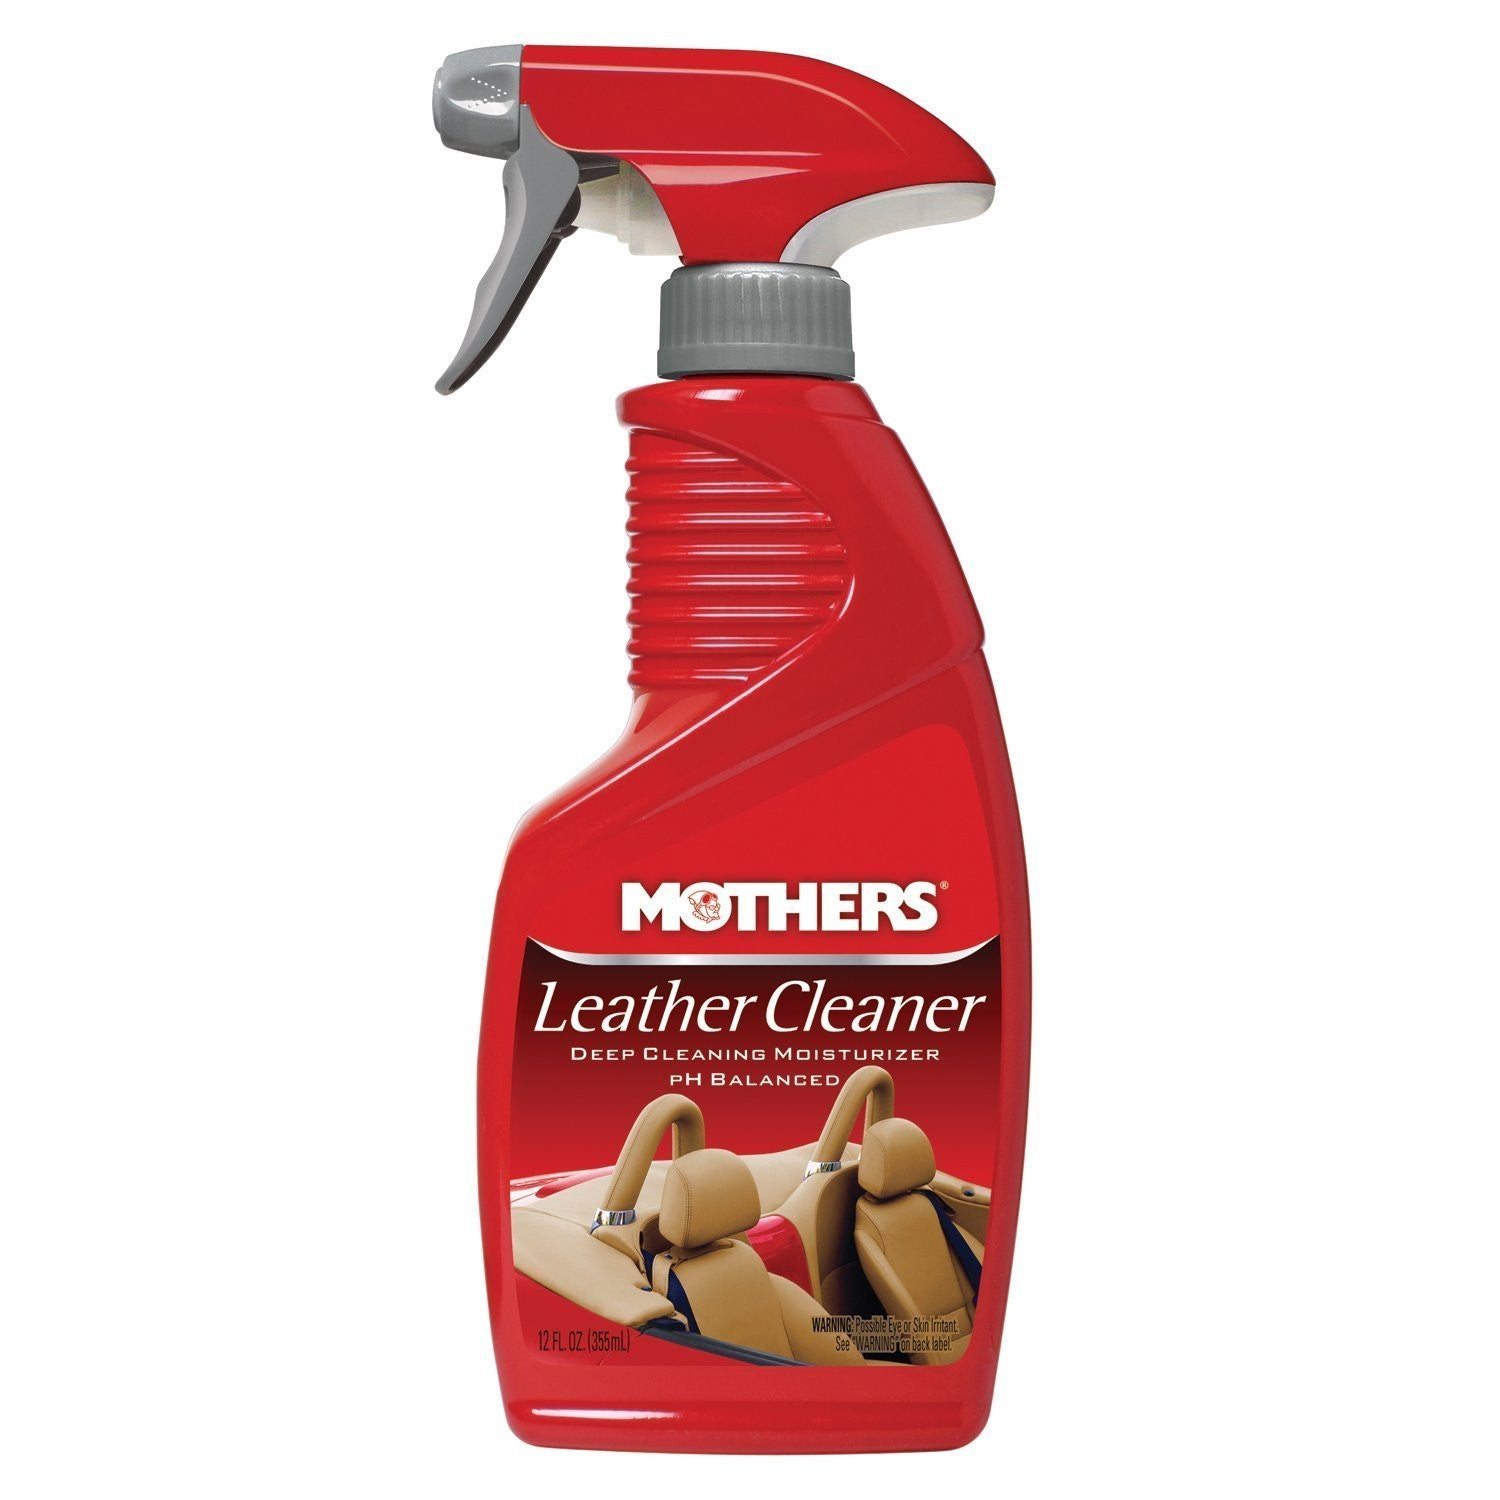 MOTHERS Leather Cleaner 12 OZ